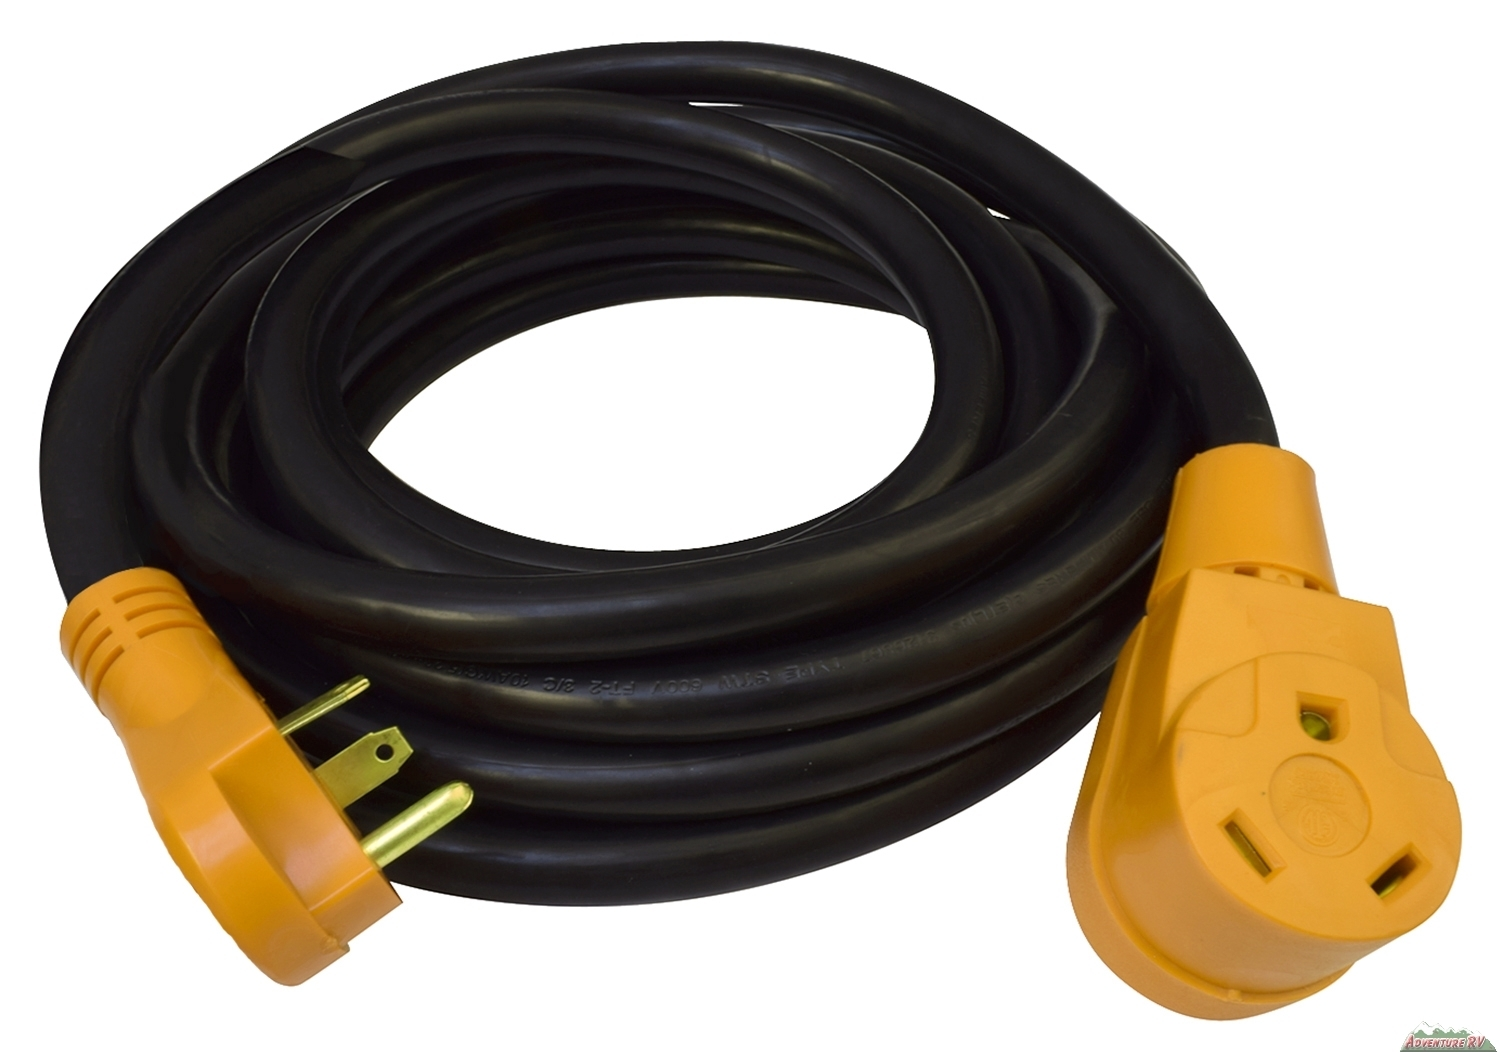 30 Amp Cynder RV Power Extension Cord 25' ft Yellow